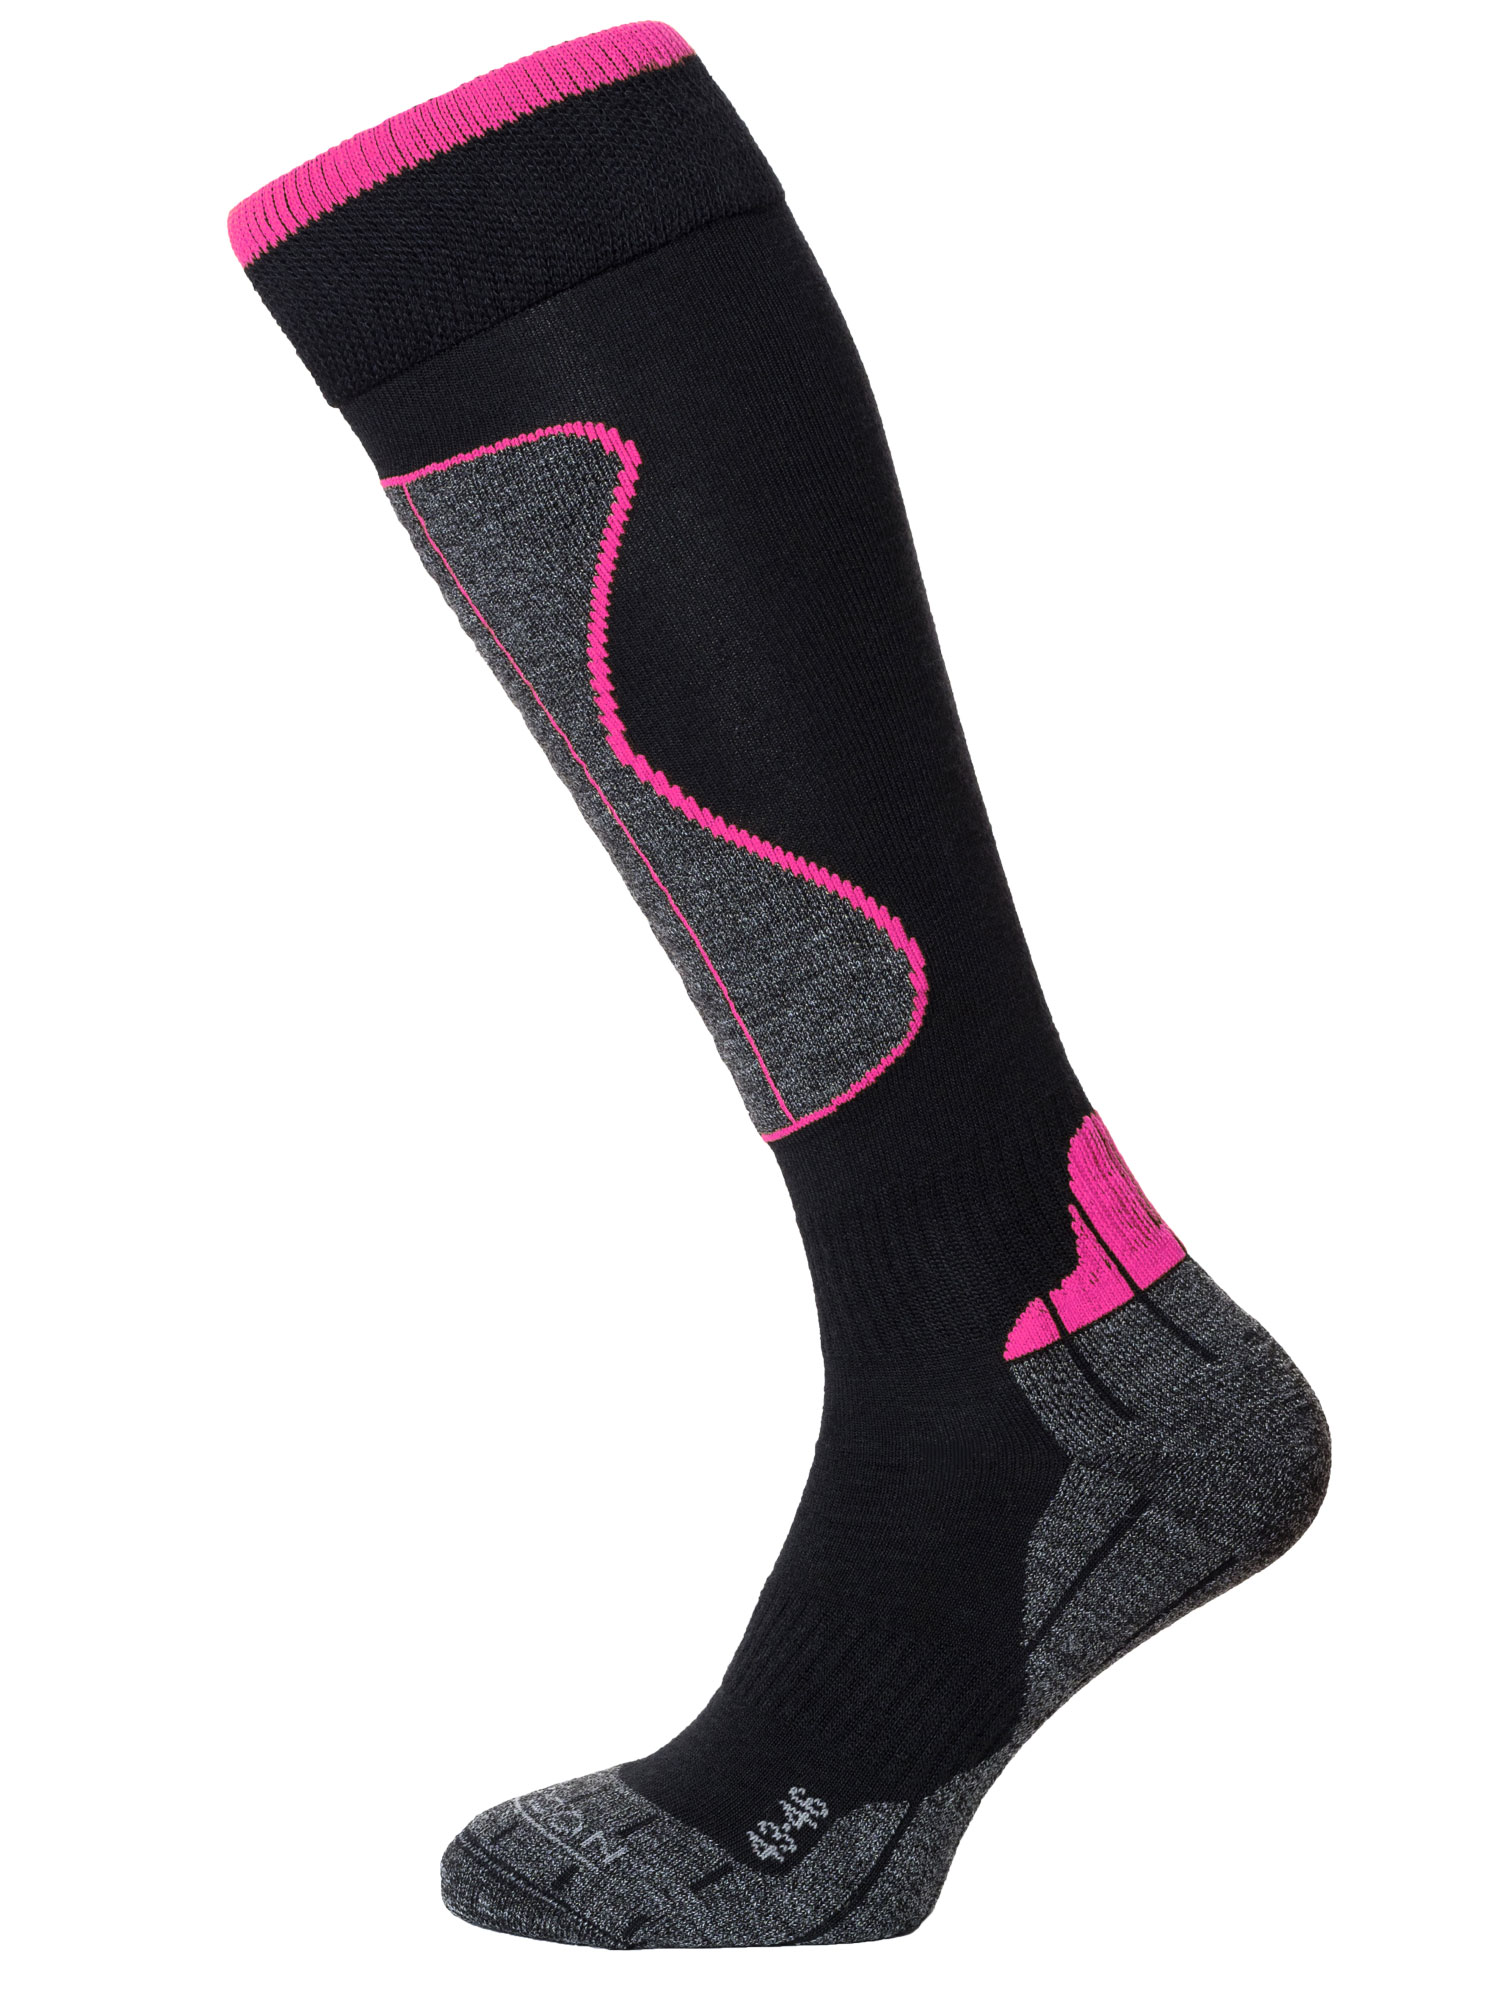 Winter Sport Technical Merino – Black / Cerise